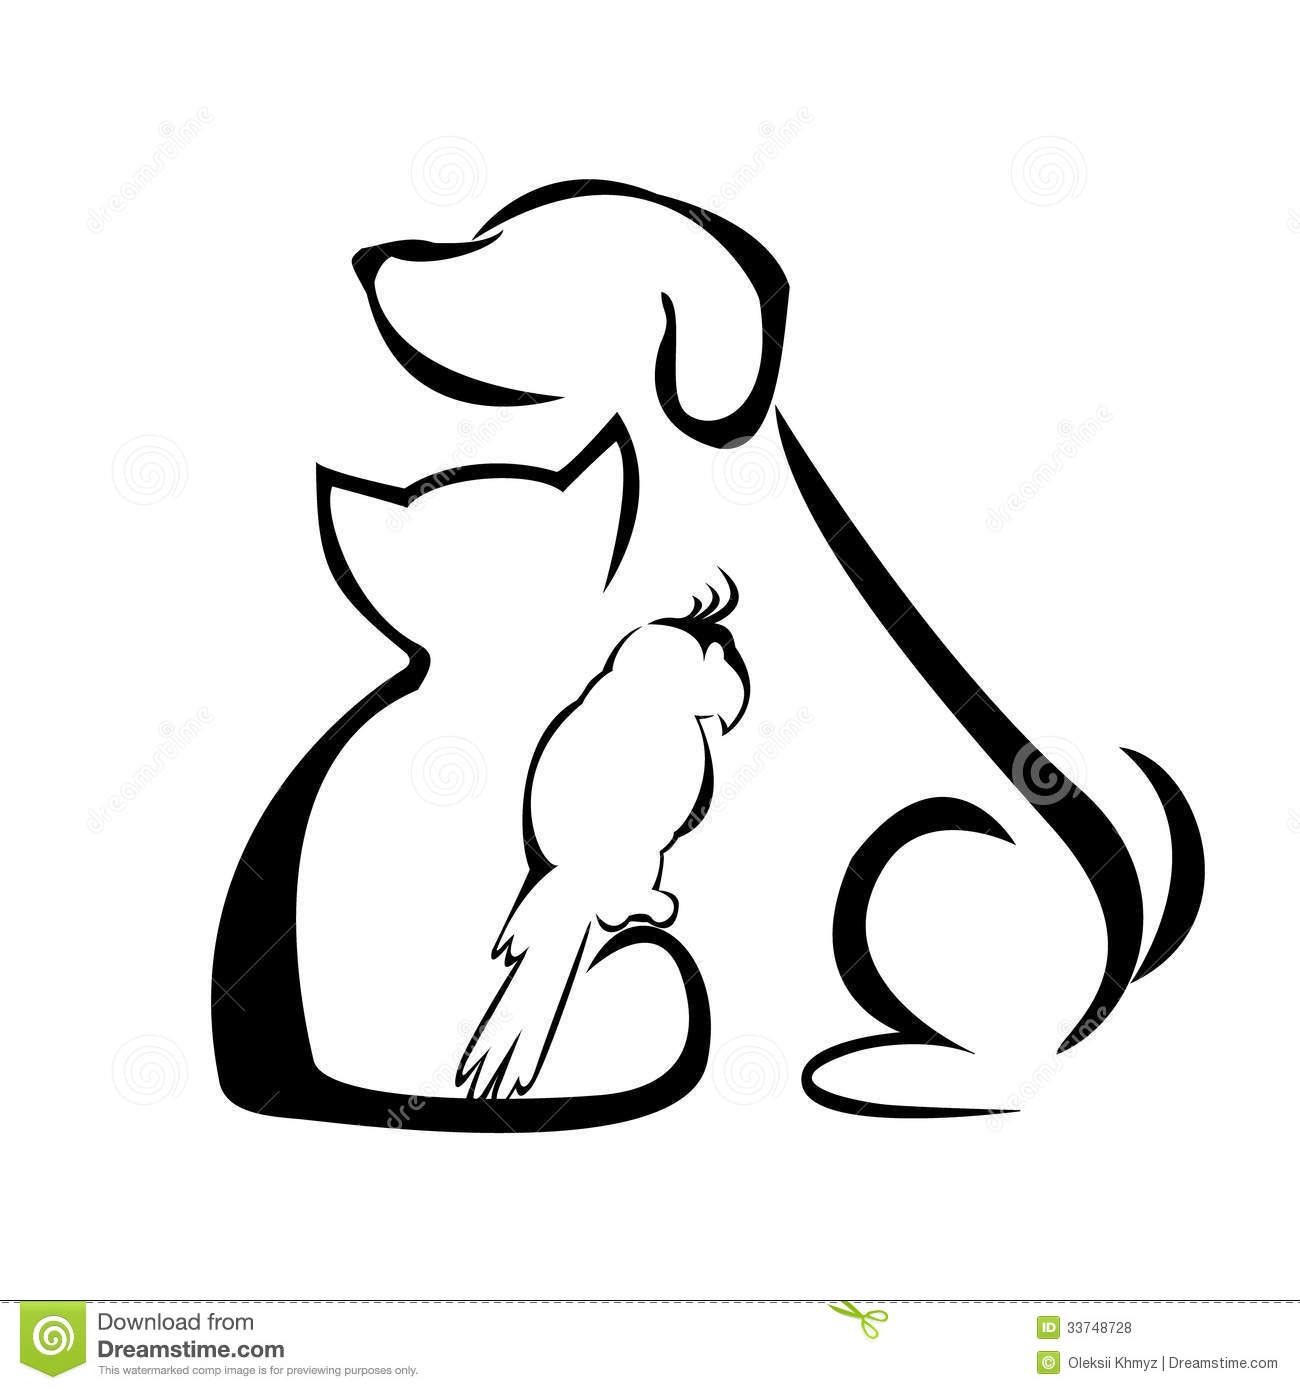 Line Art Dog Tattoo : Royalty free stock photos dog cat and parrot image